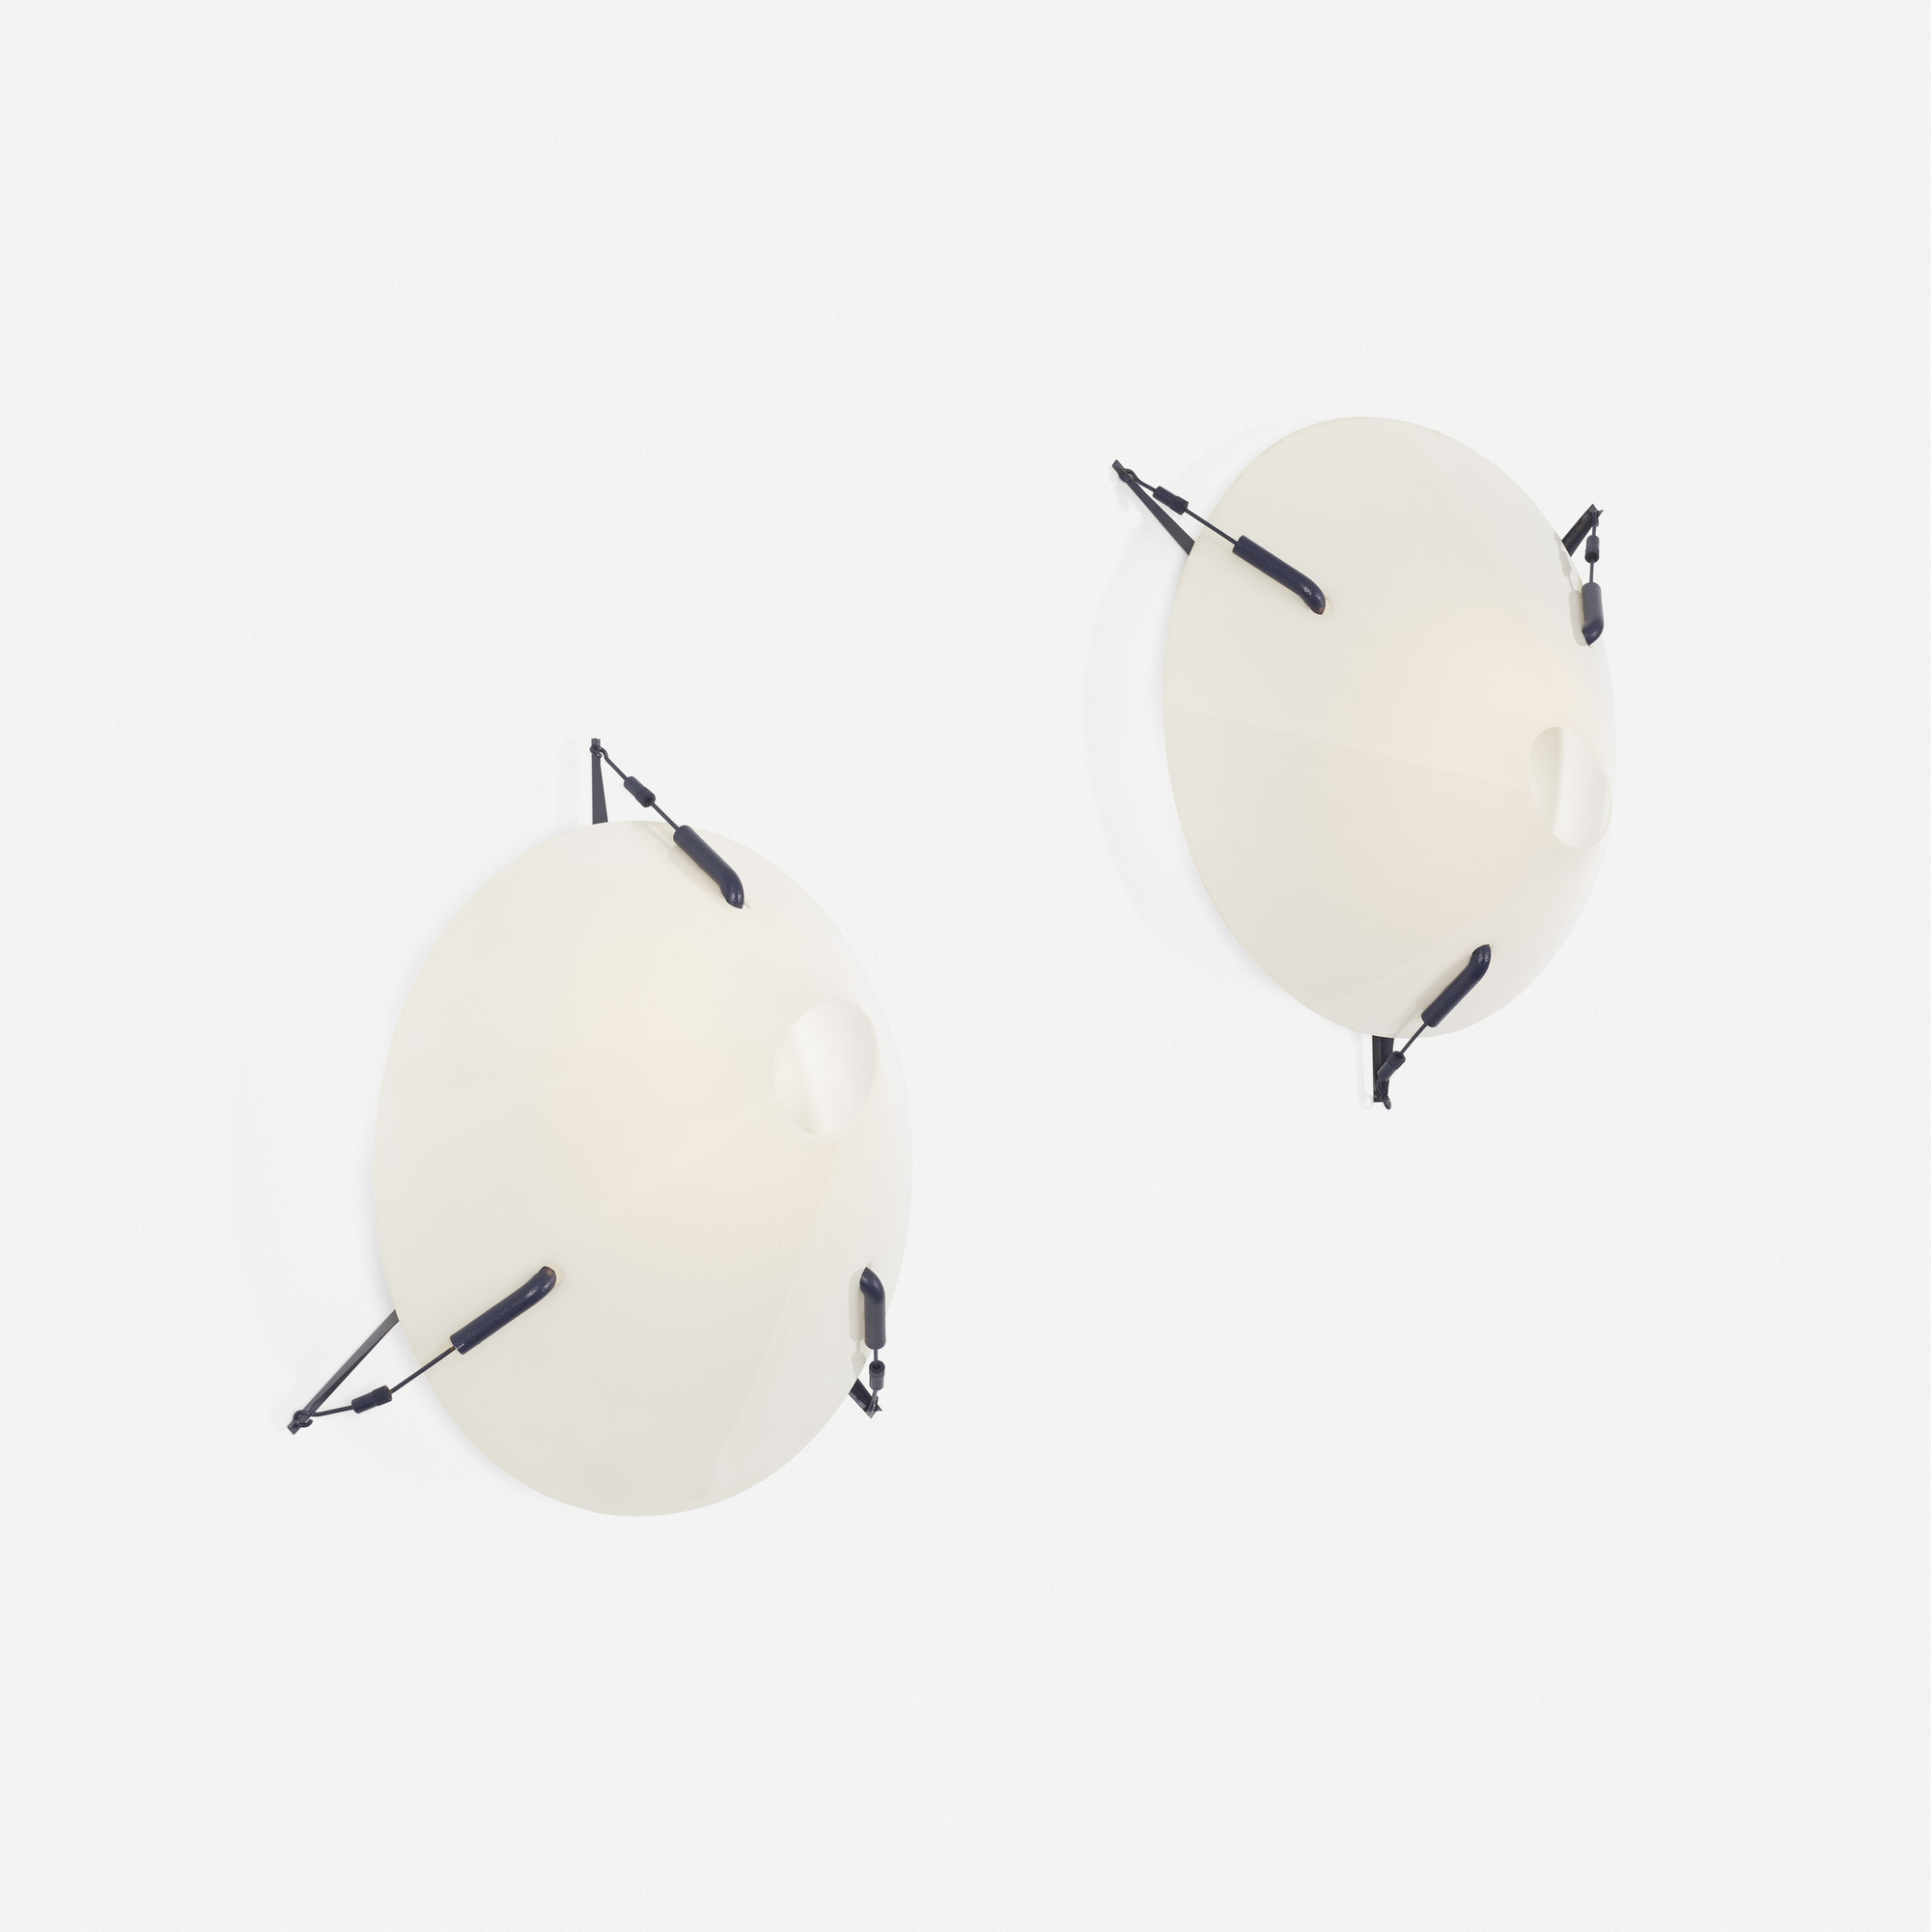 271: Elio Martinelli / sconces, pair (2 of 2)